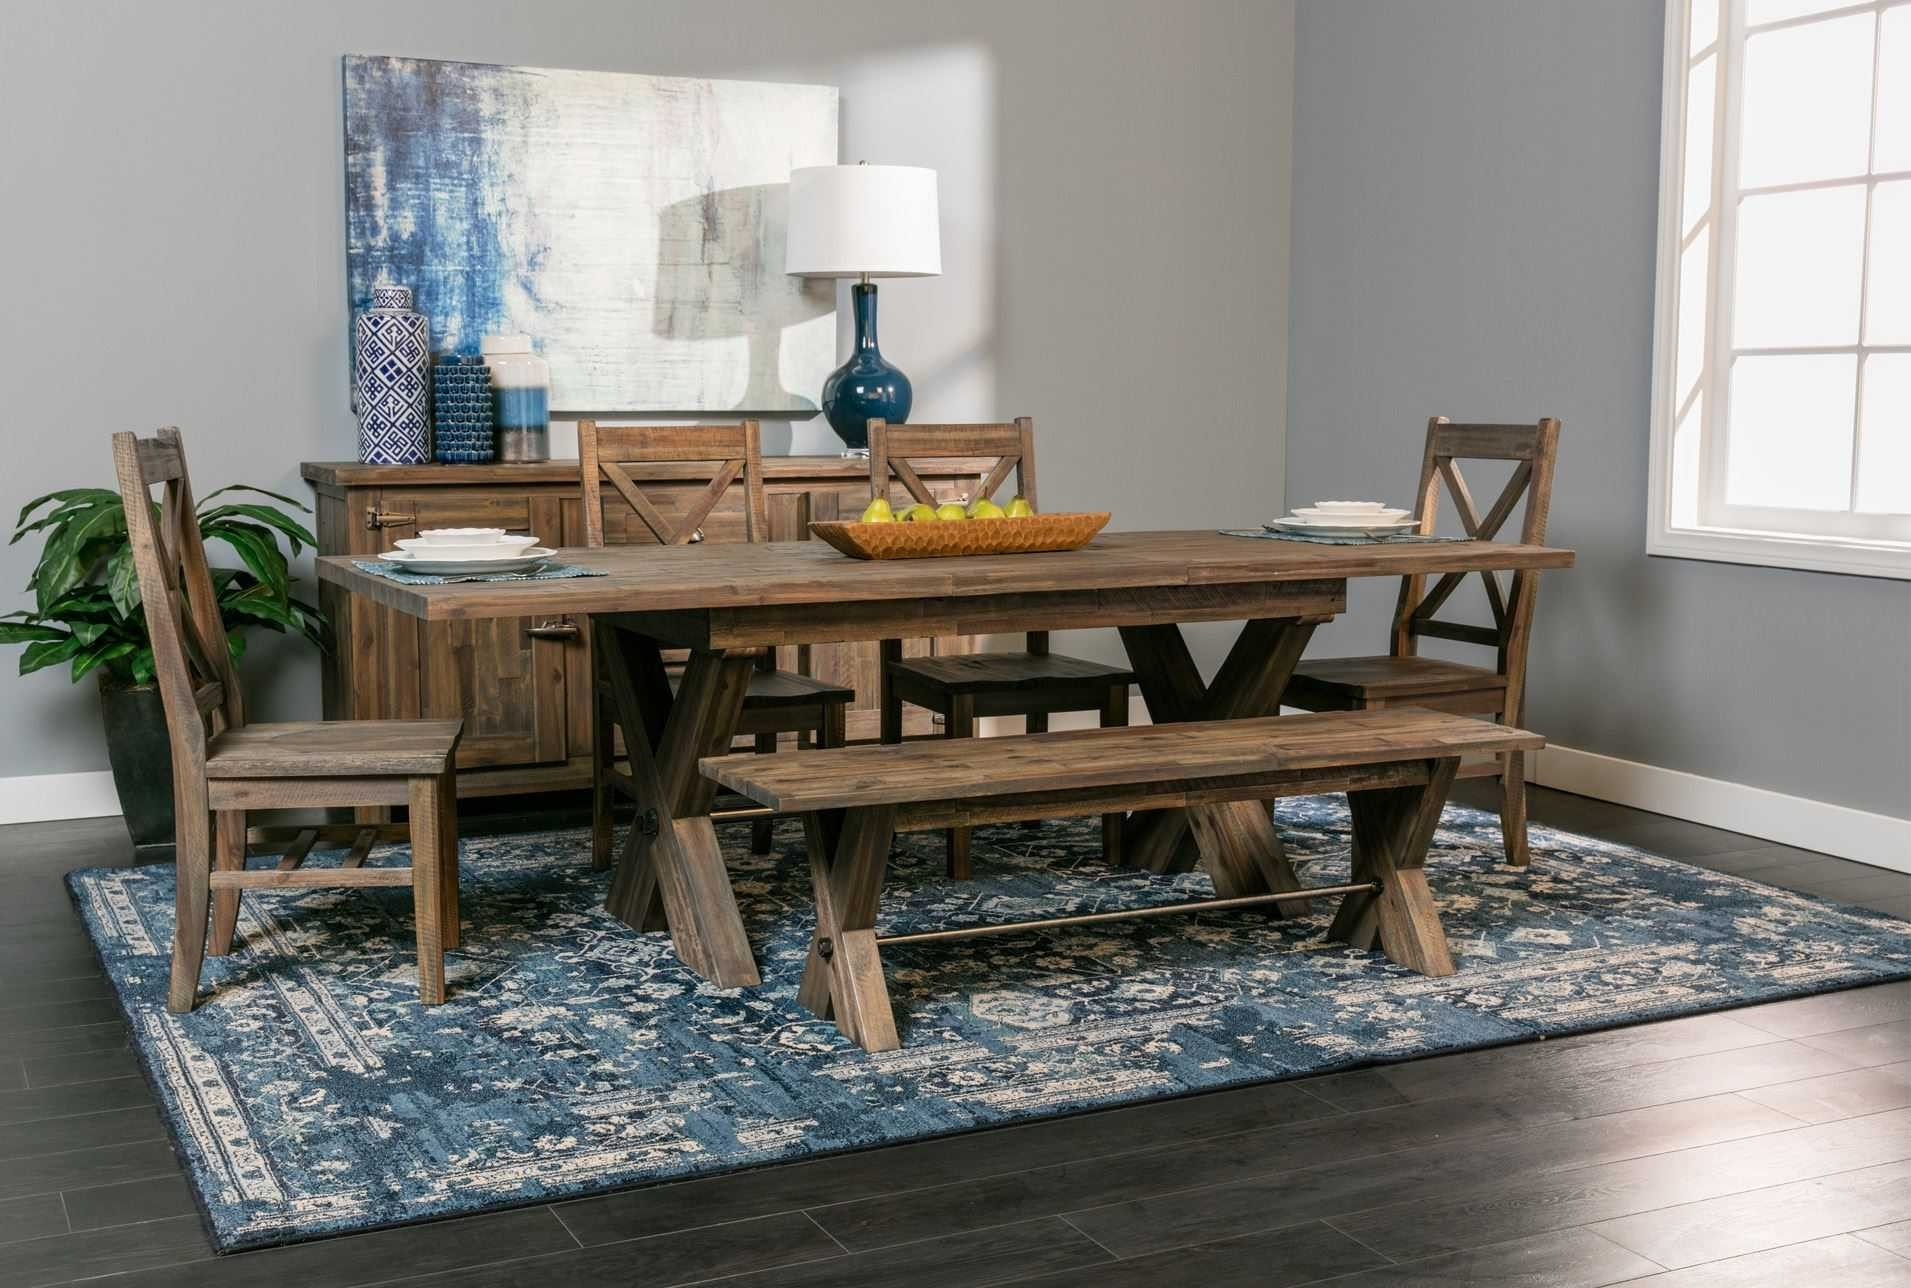 Likeable Living Spaces Dining Room Tables Of S #43937 | Forazhouse Pertaining To Most Recent Mallard 7 Piece Extension Dining Sets (Image 5 of 20)